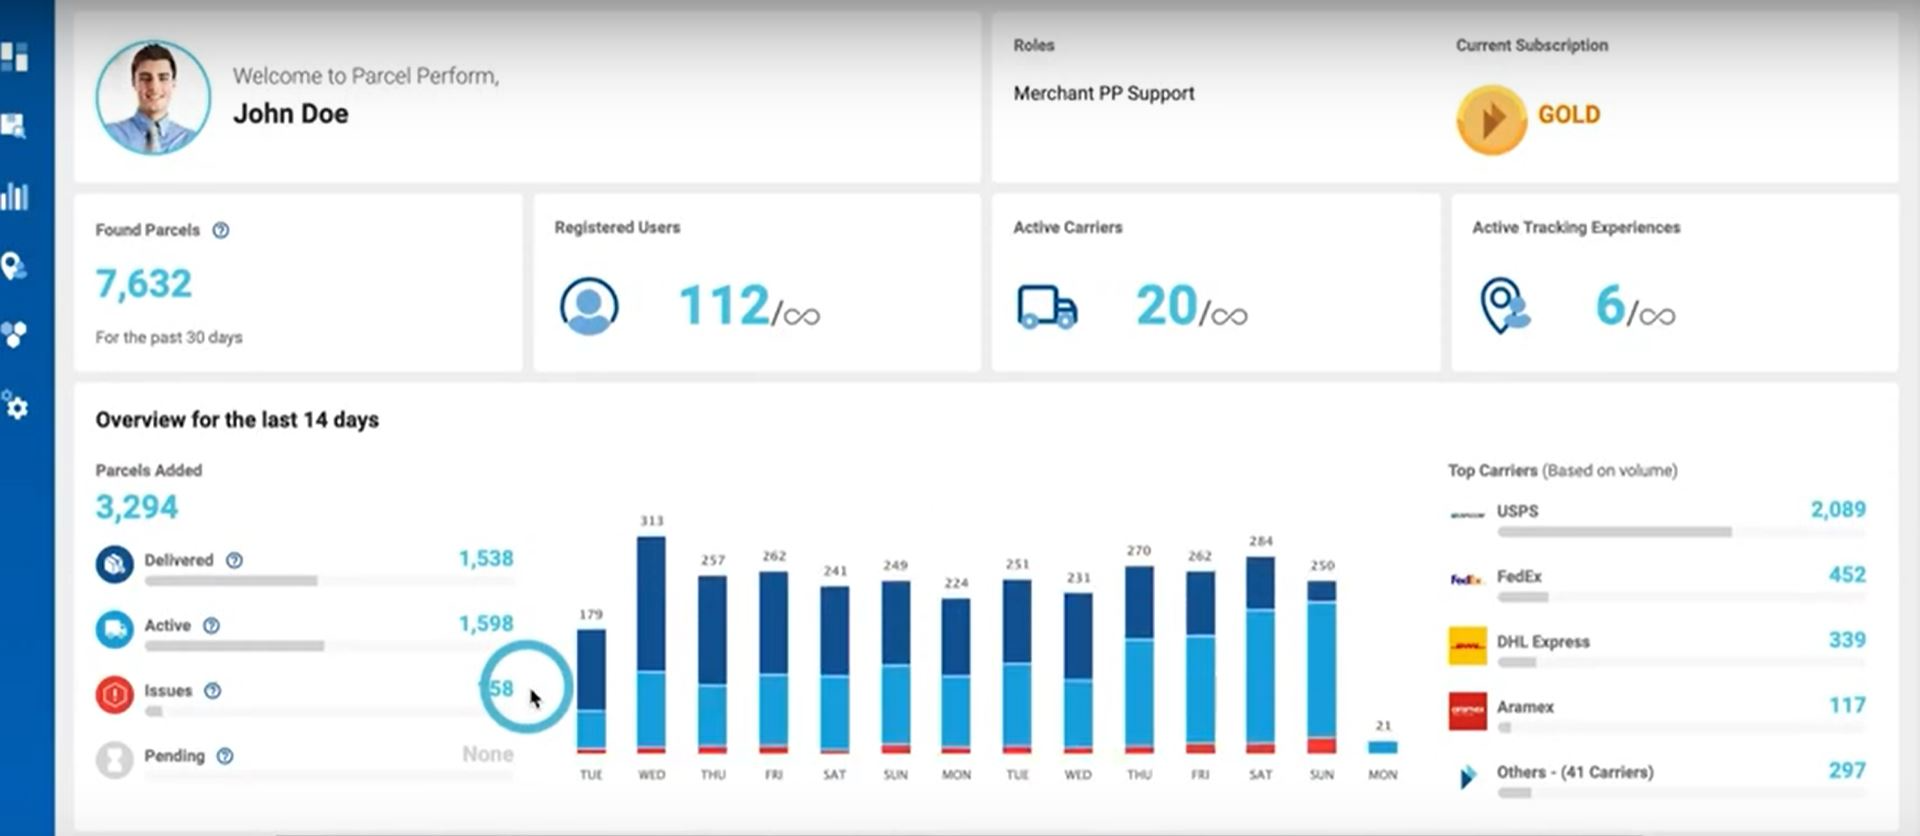 Parcel Perform main dashboard